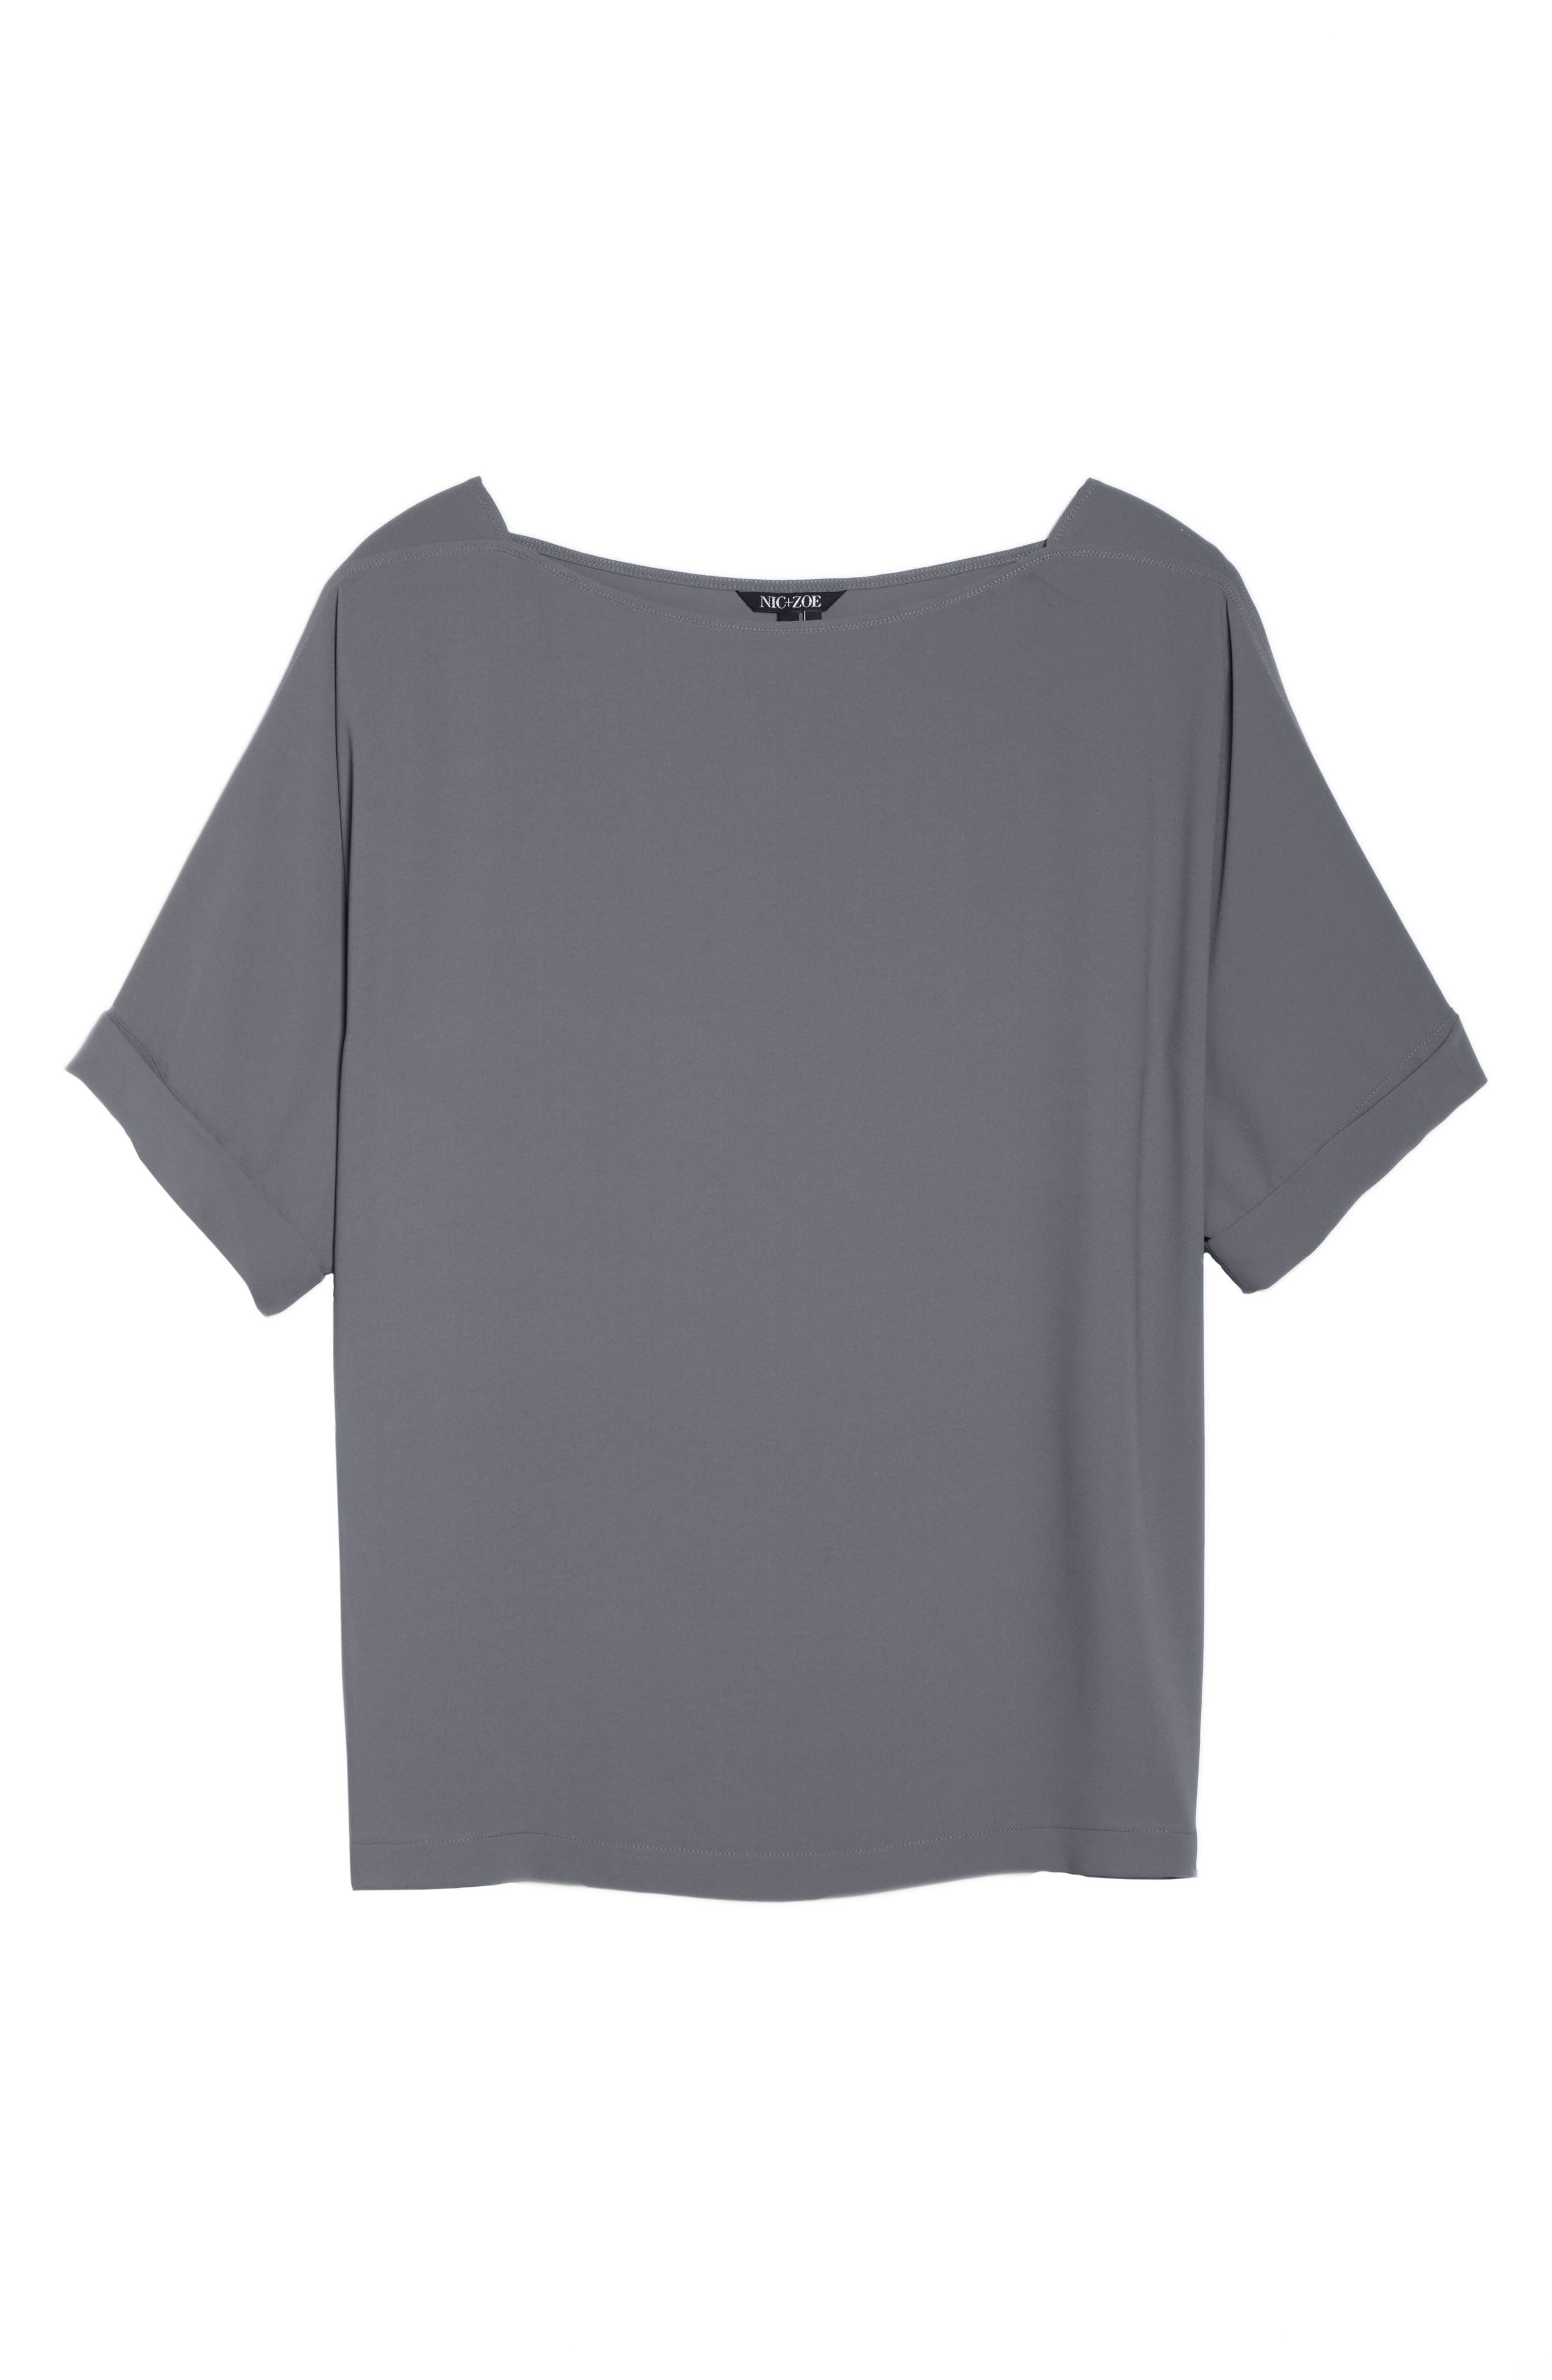 Moroccan Tee,                             Alternate thumbnail 11, color,